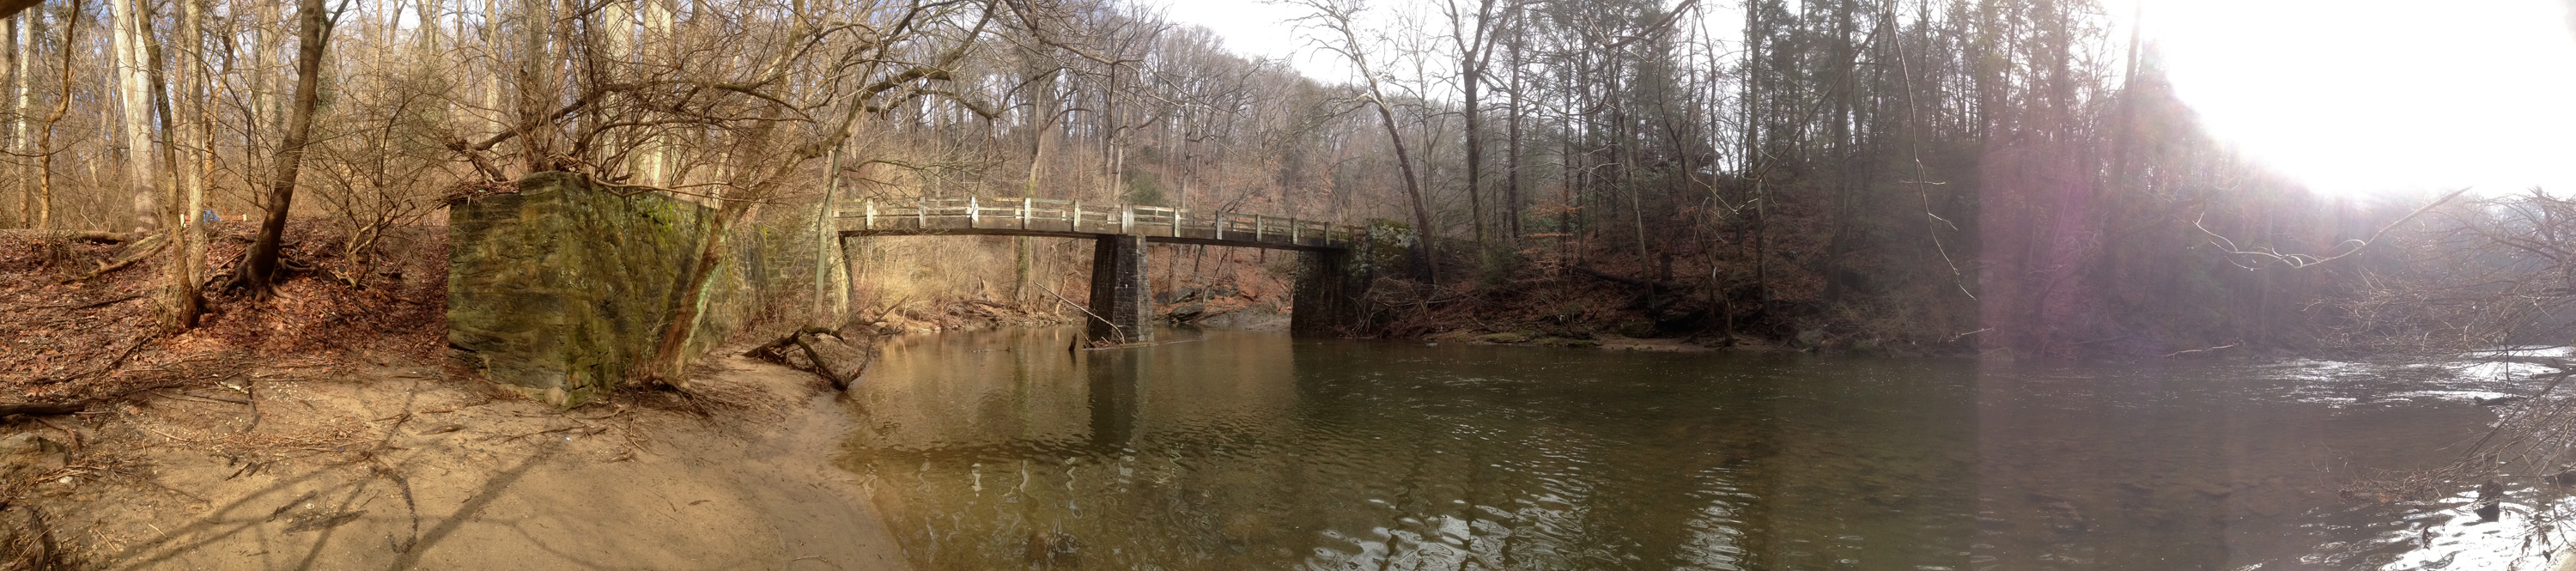 PANORAMA OF THE WEEK: bend of Wissahickon Creek at Kitchens Lane Bridge